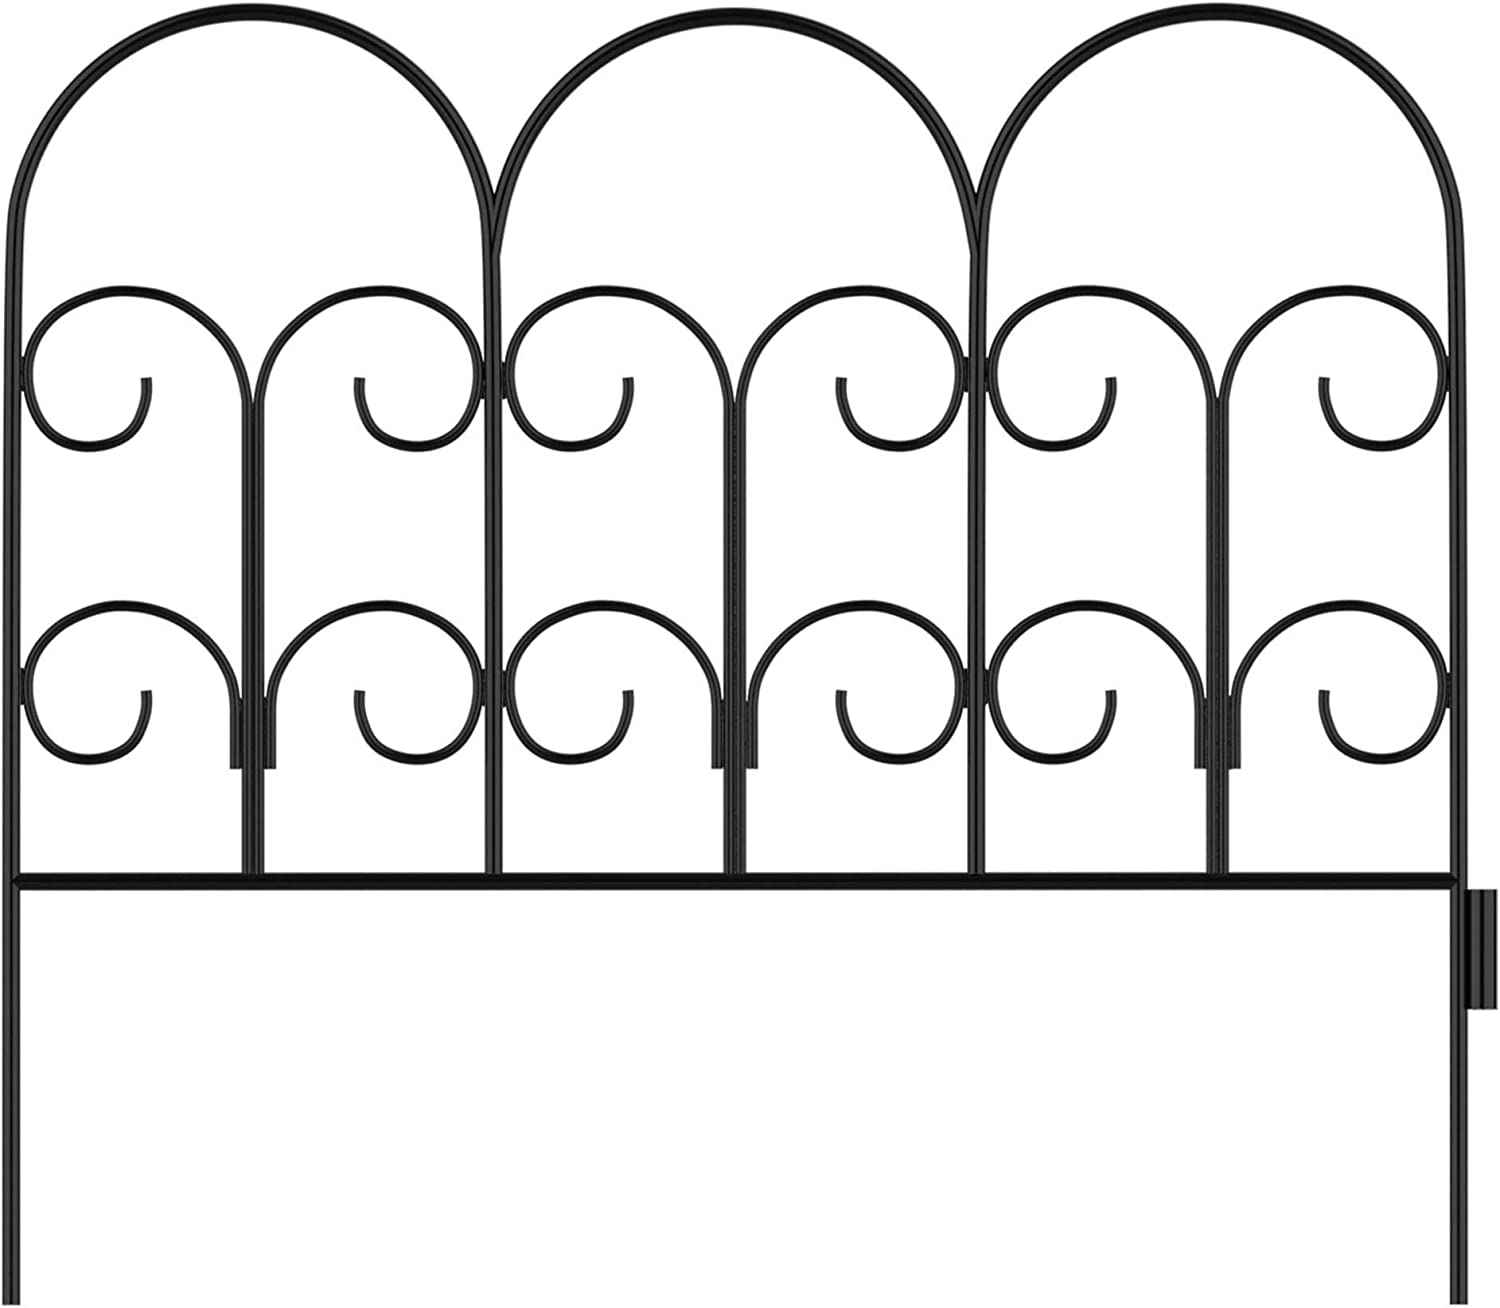 Pure Garden 50-LG5058 Metal Garden Fencing-Set of 5 Panels, Black